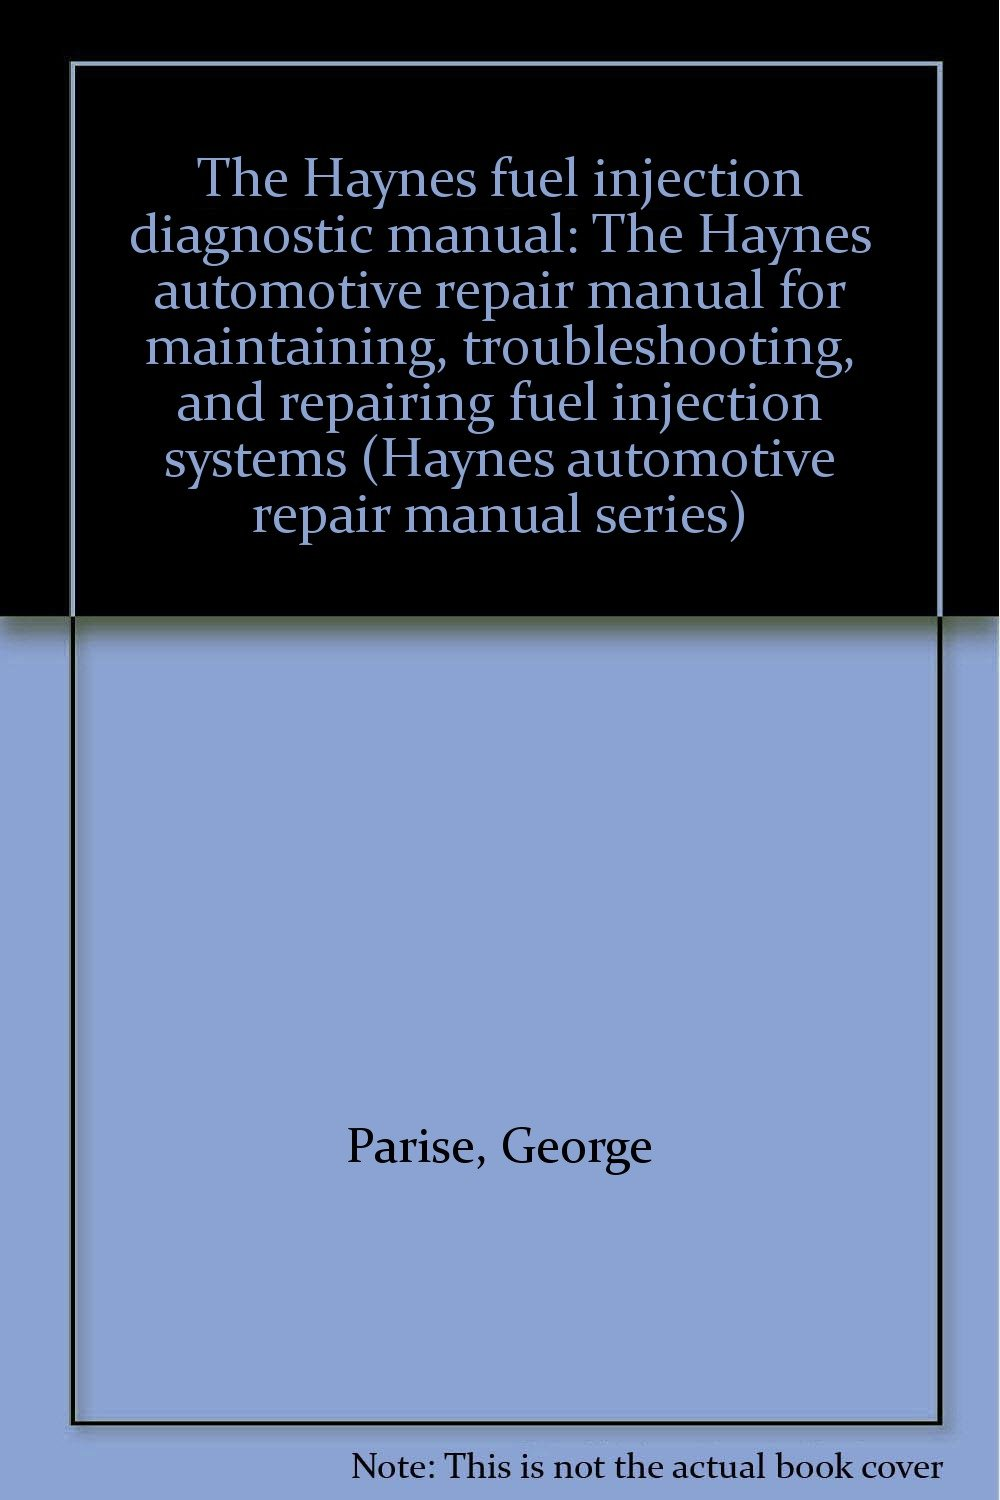 The Haynes fuel injection diagnostic manual: The Haynes automotive repair  manual for maintaining, troubleshooting, and repairing fuel injection  systems ...